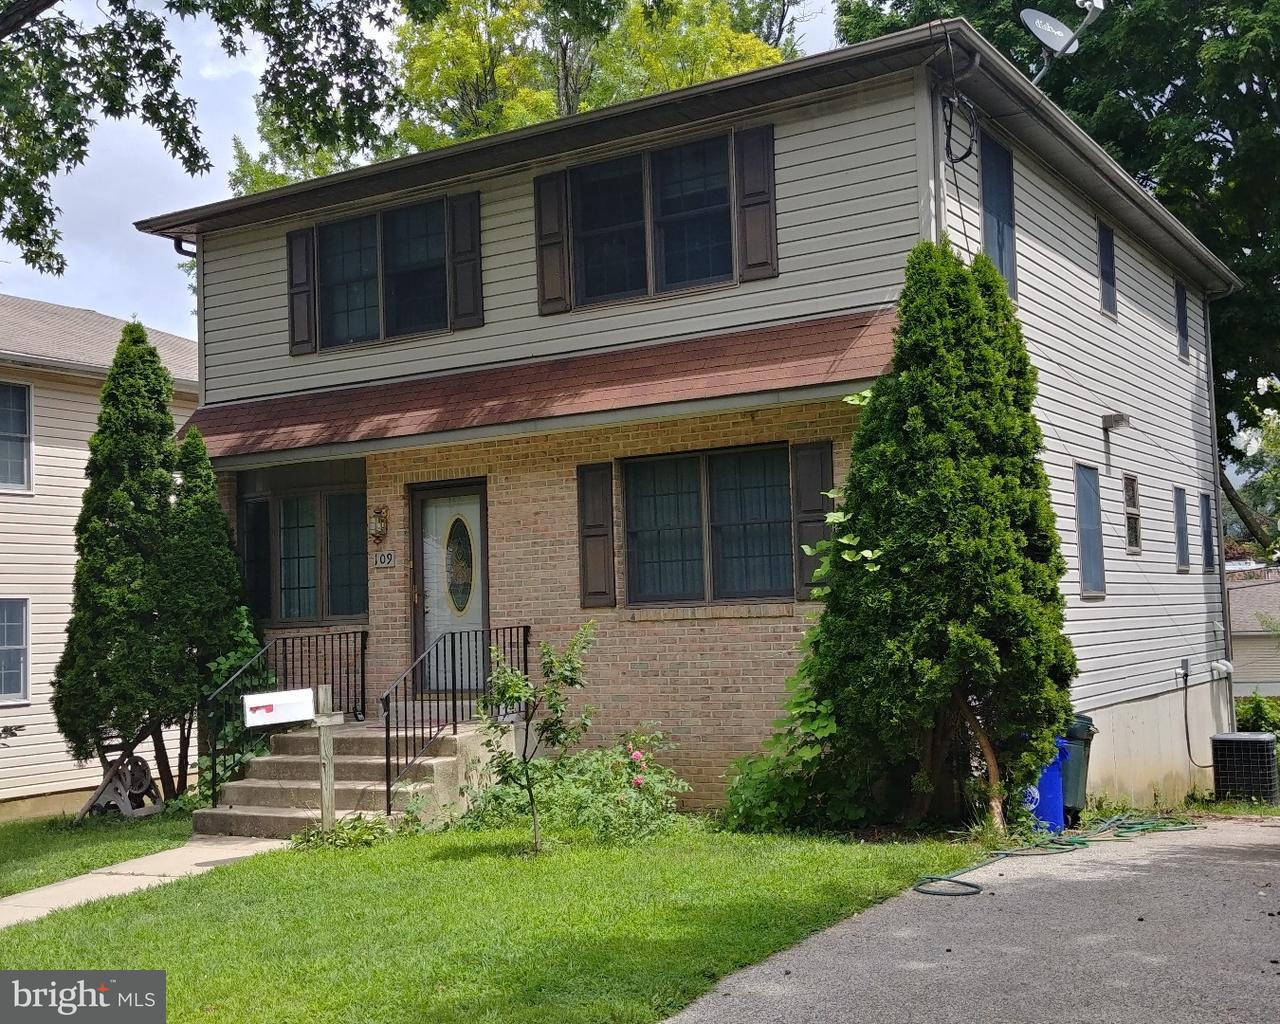 109 Foster Avenue Haverford, PA 19083